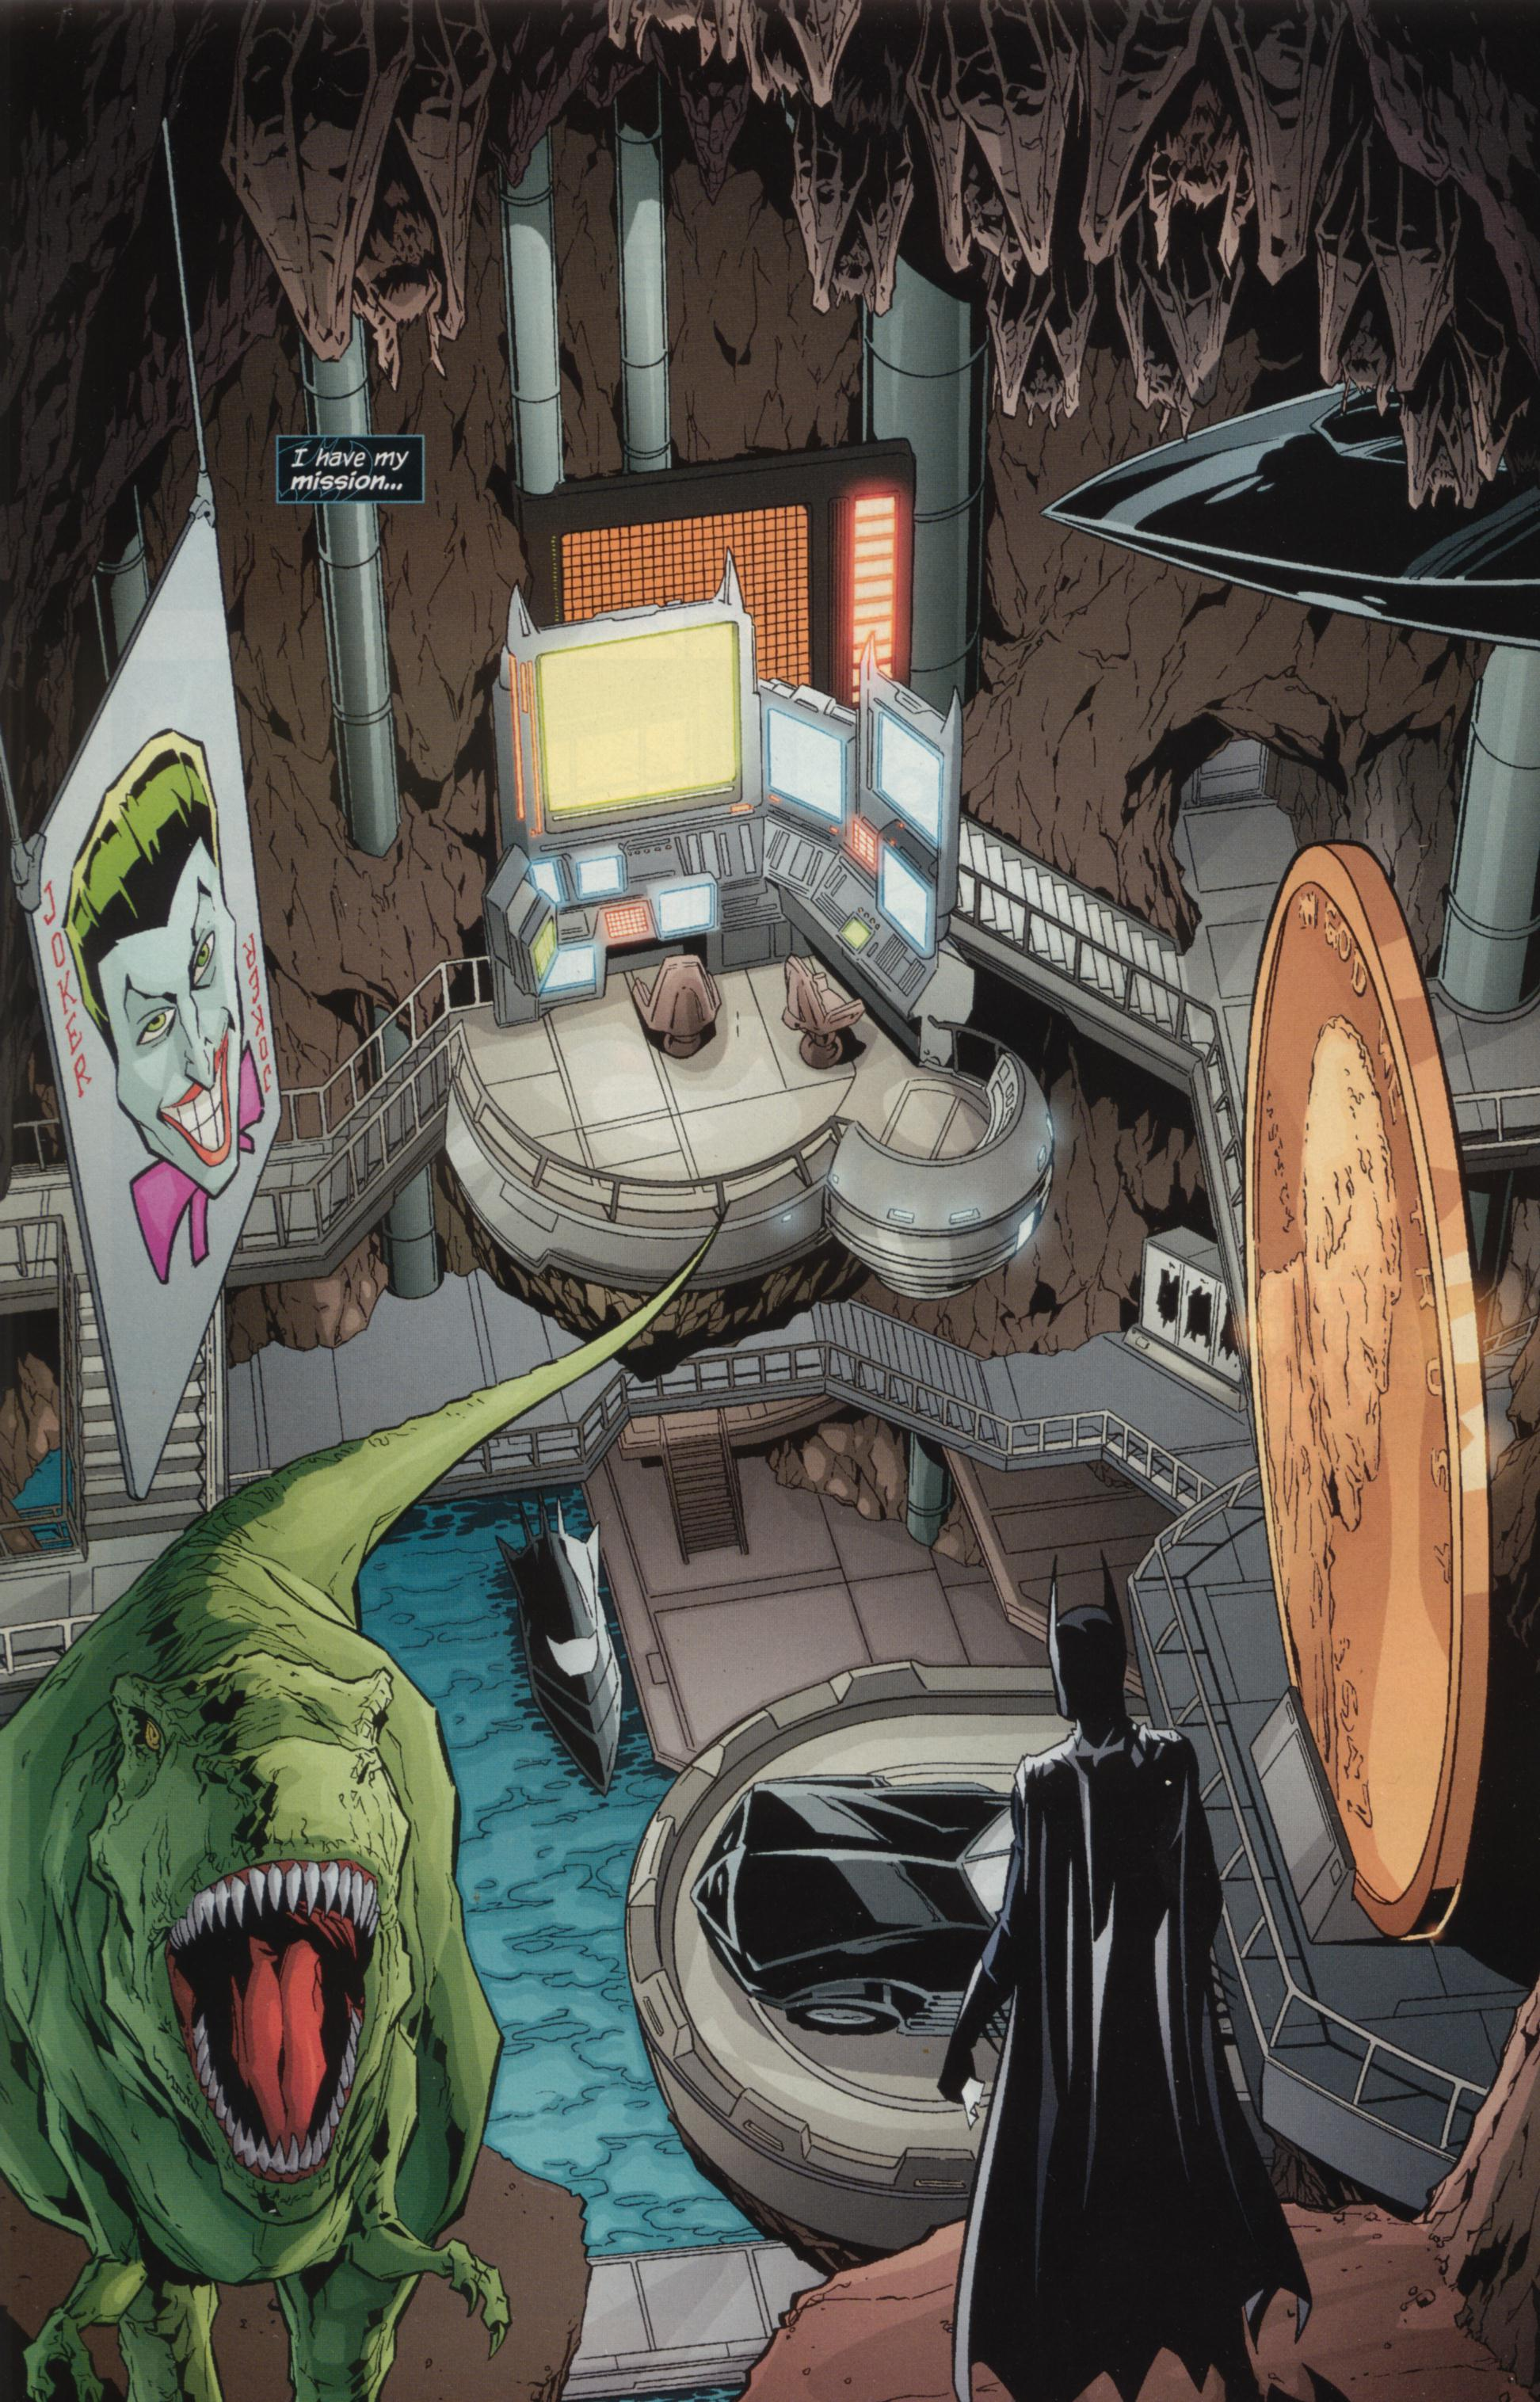 dc comics - Why is there a dinosaur in the Batcave? - Science ...